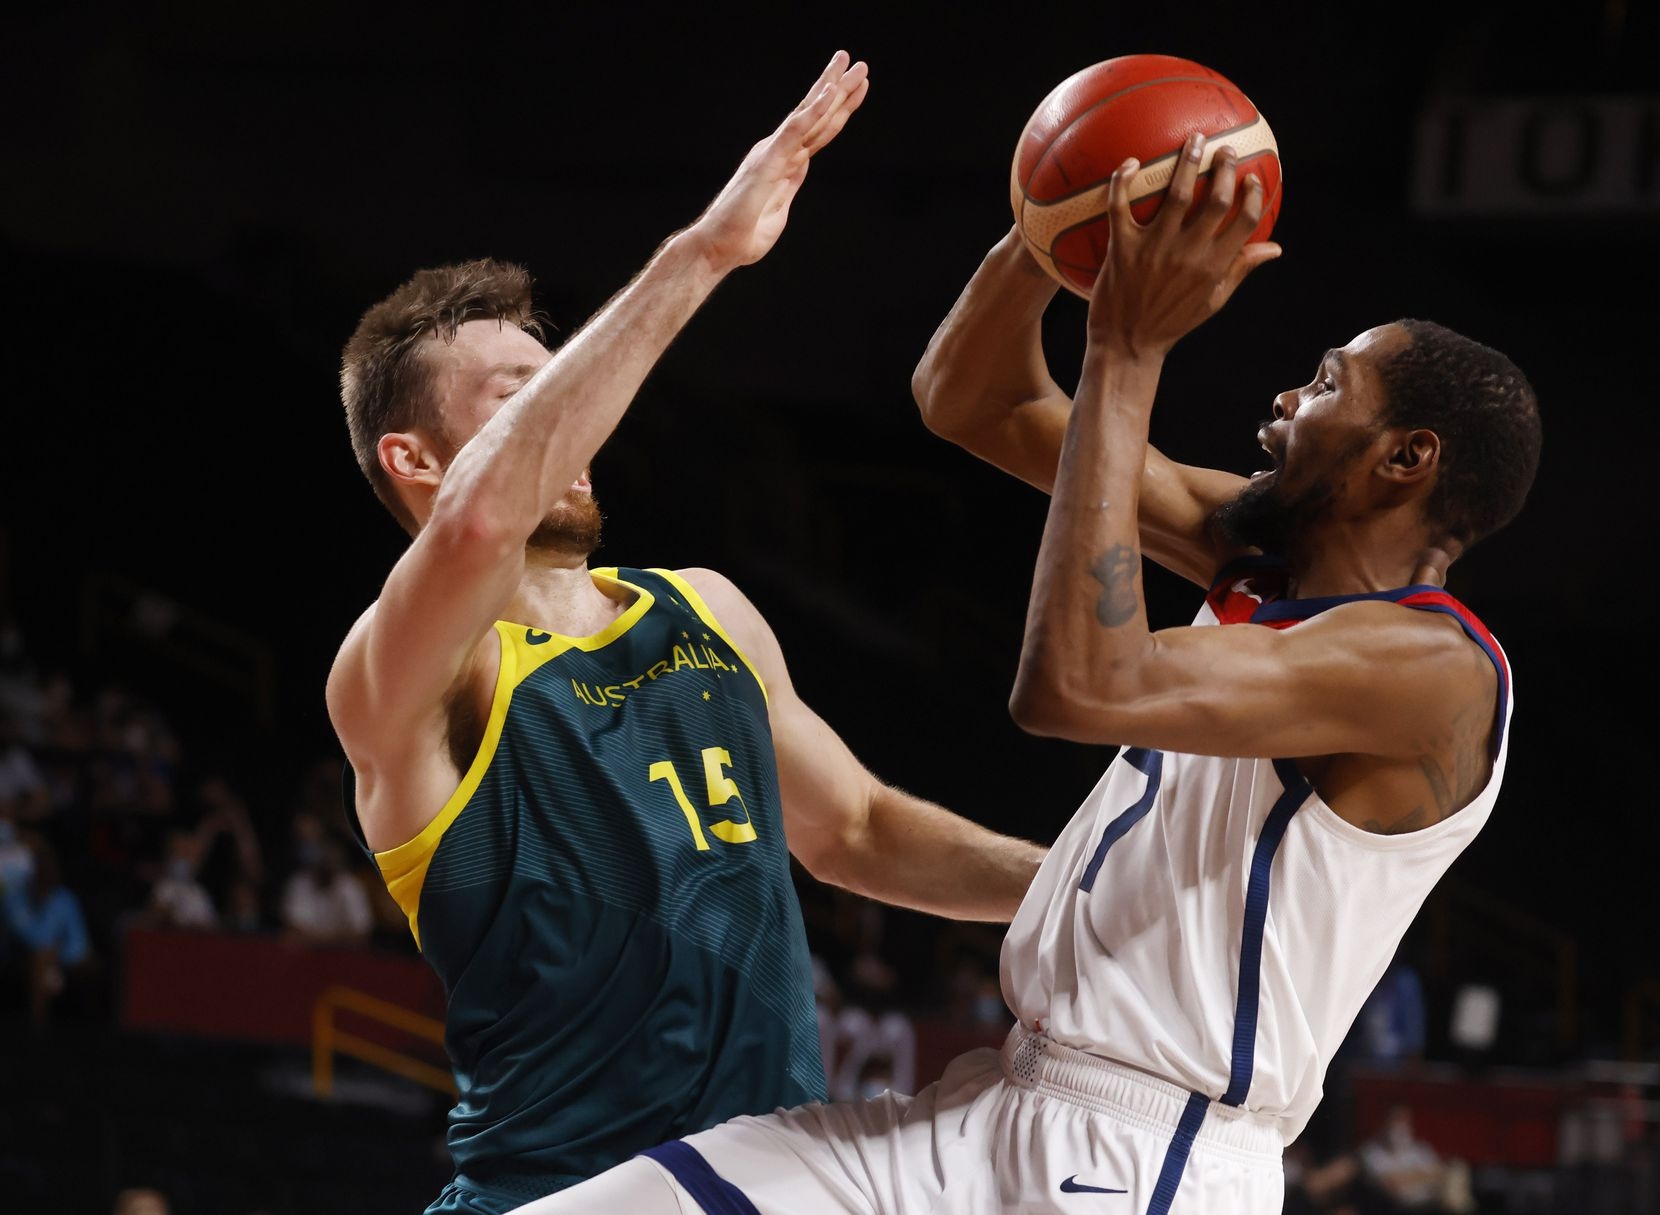 USA's Kevin Durant (7) shoots as he is defended by Australia's Nic Kay (15) during the first half of a men's basketball semifinal at the postponed 2020 Tokyo Olympics at Saitama Super Arena, on Thursday, August 5, 2021, in Saitama, Japan. USA defeated Australia 97-78 to advance to the gold medal game. (Vernon Bryant/The Dallas Morning News)